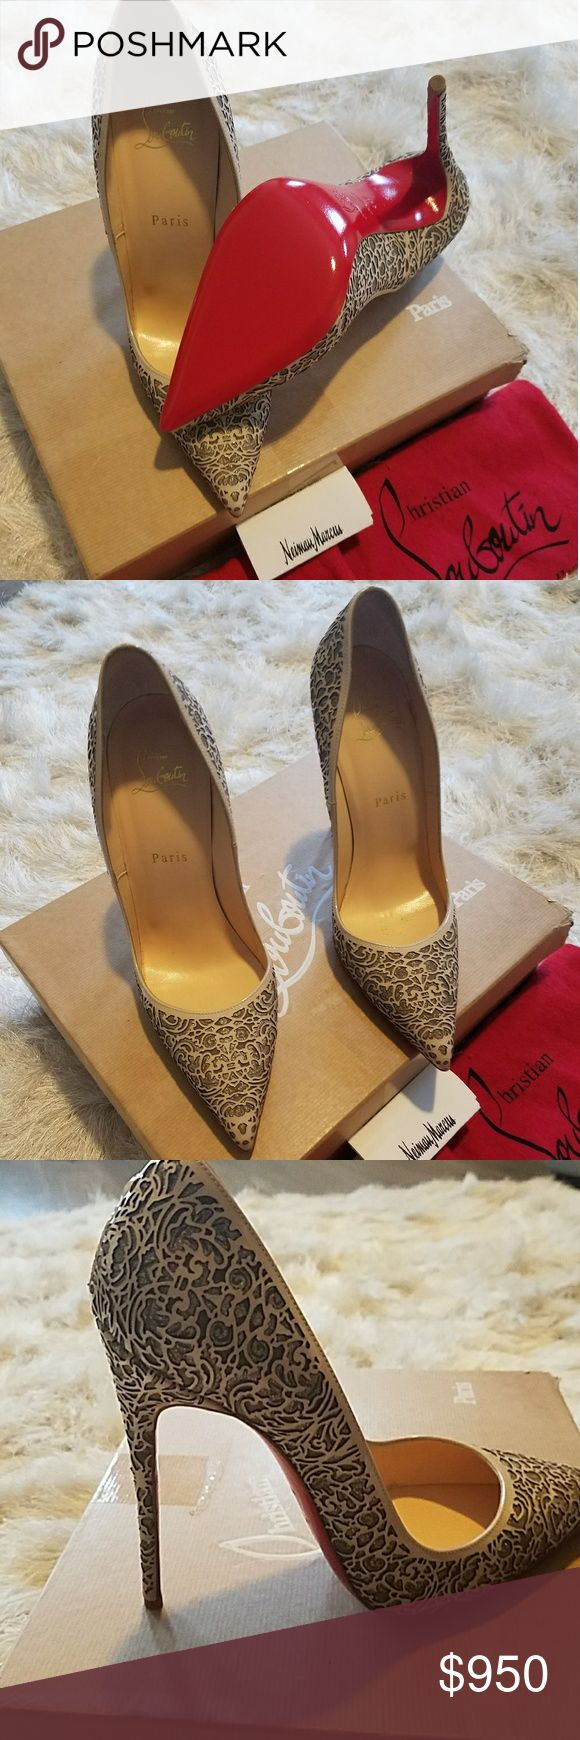 cl shoes outlet christian louboutin